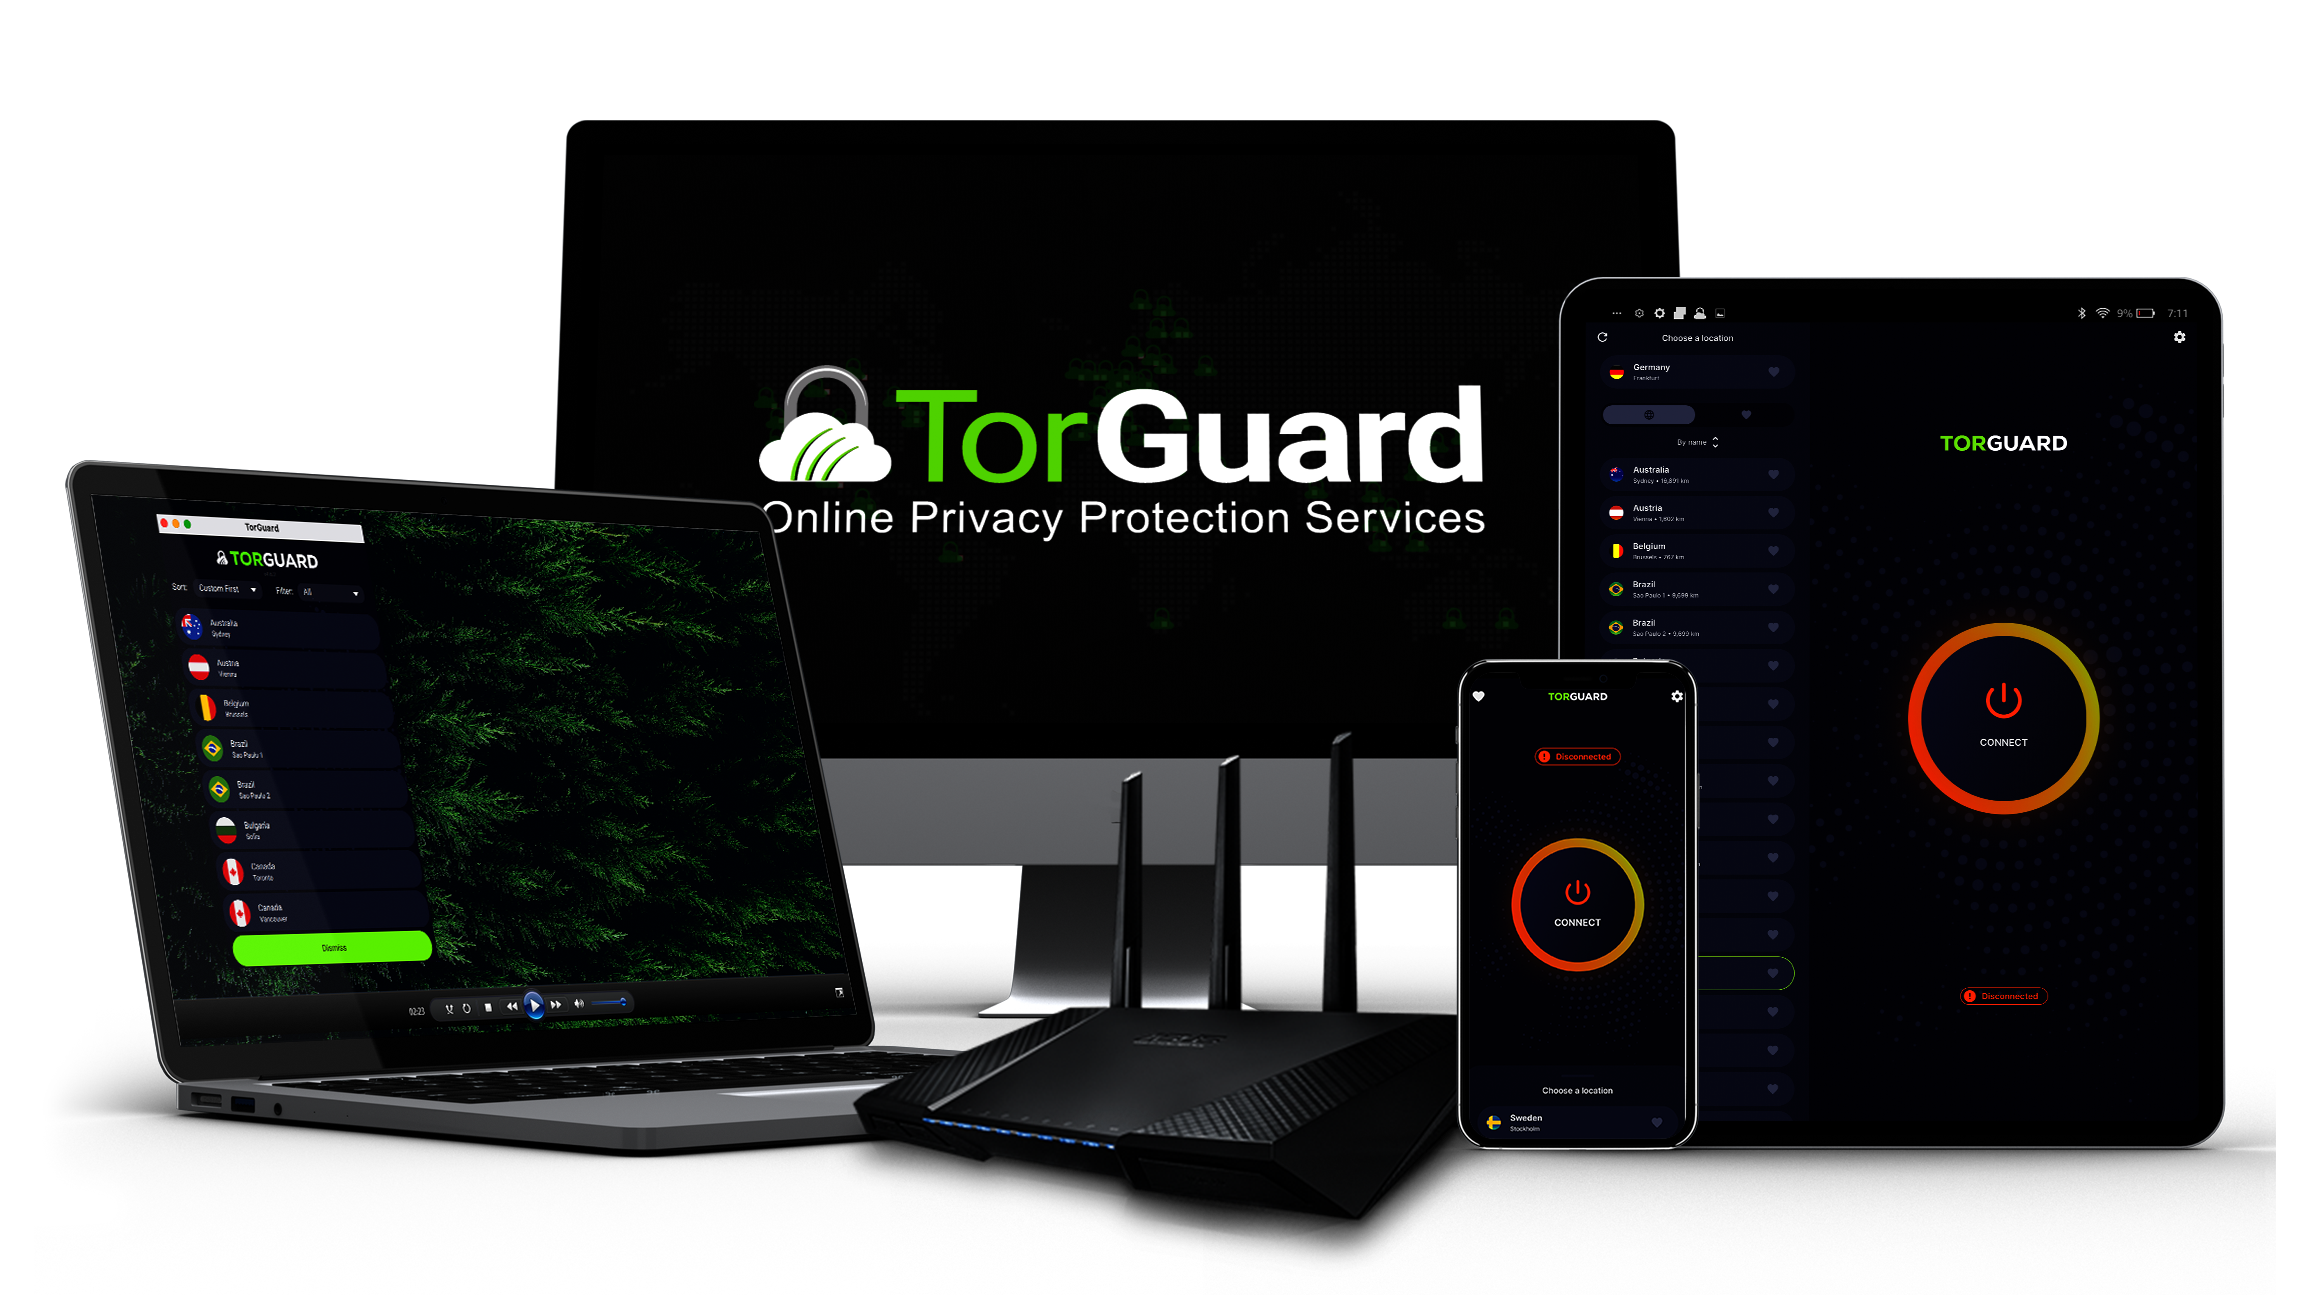 TorGuard's New Desktop and Android App is Live